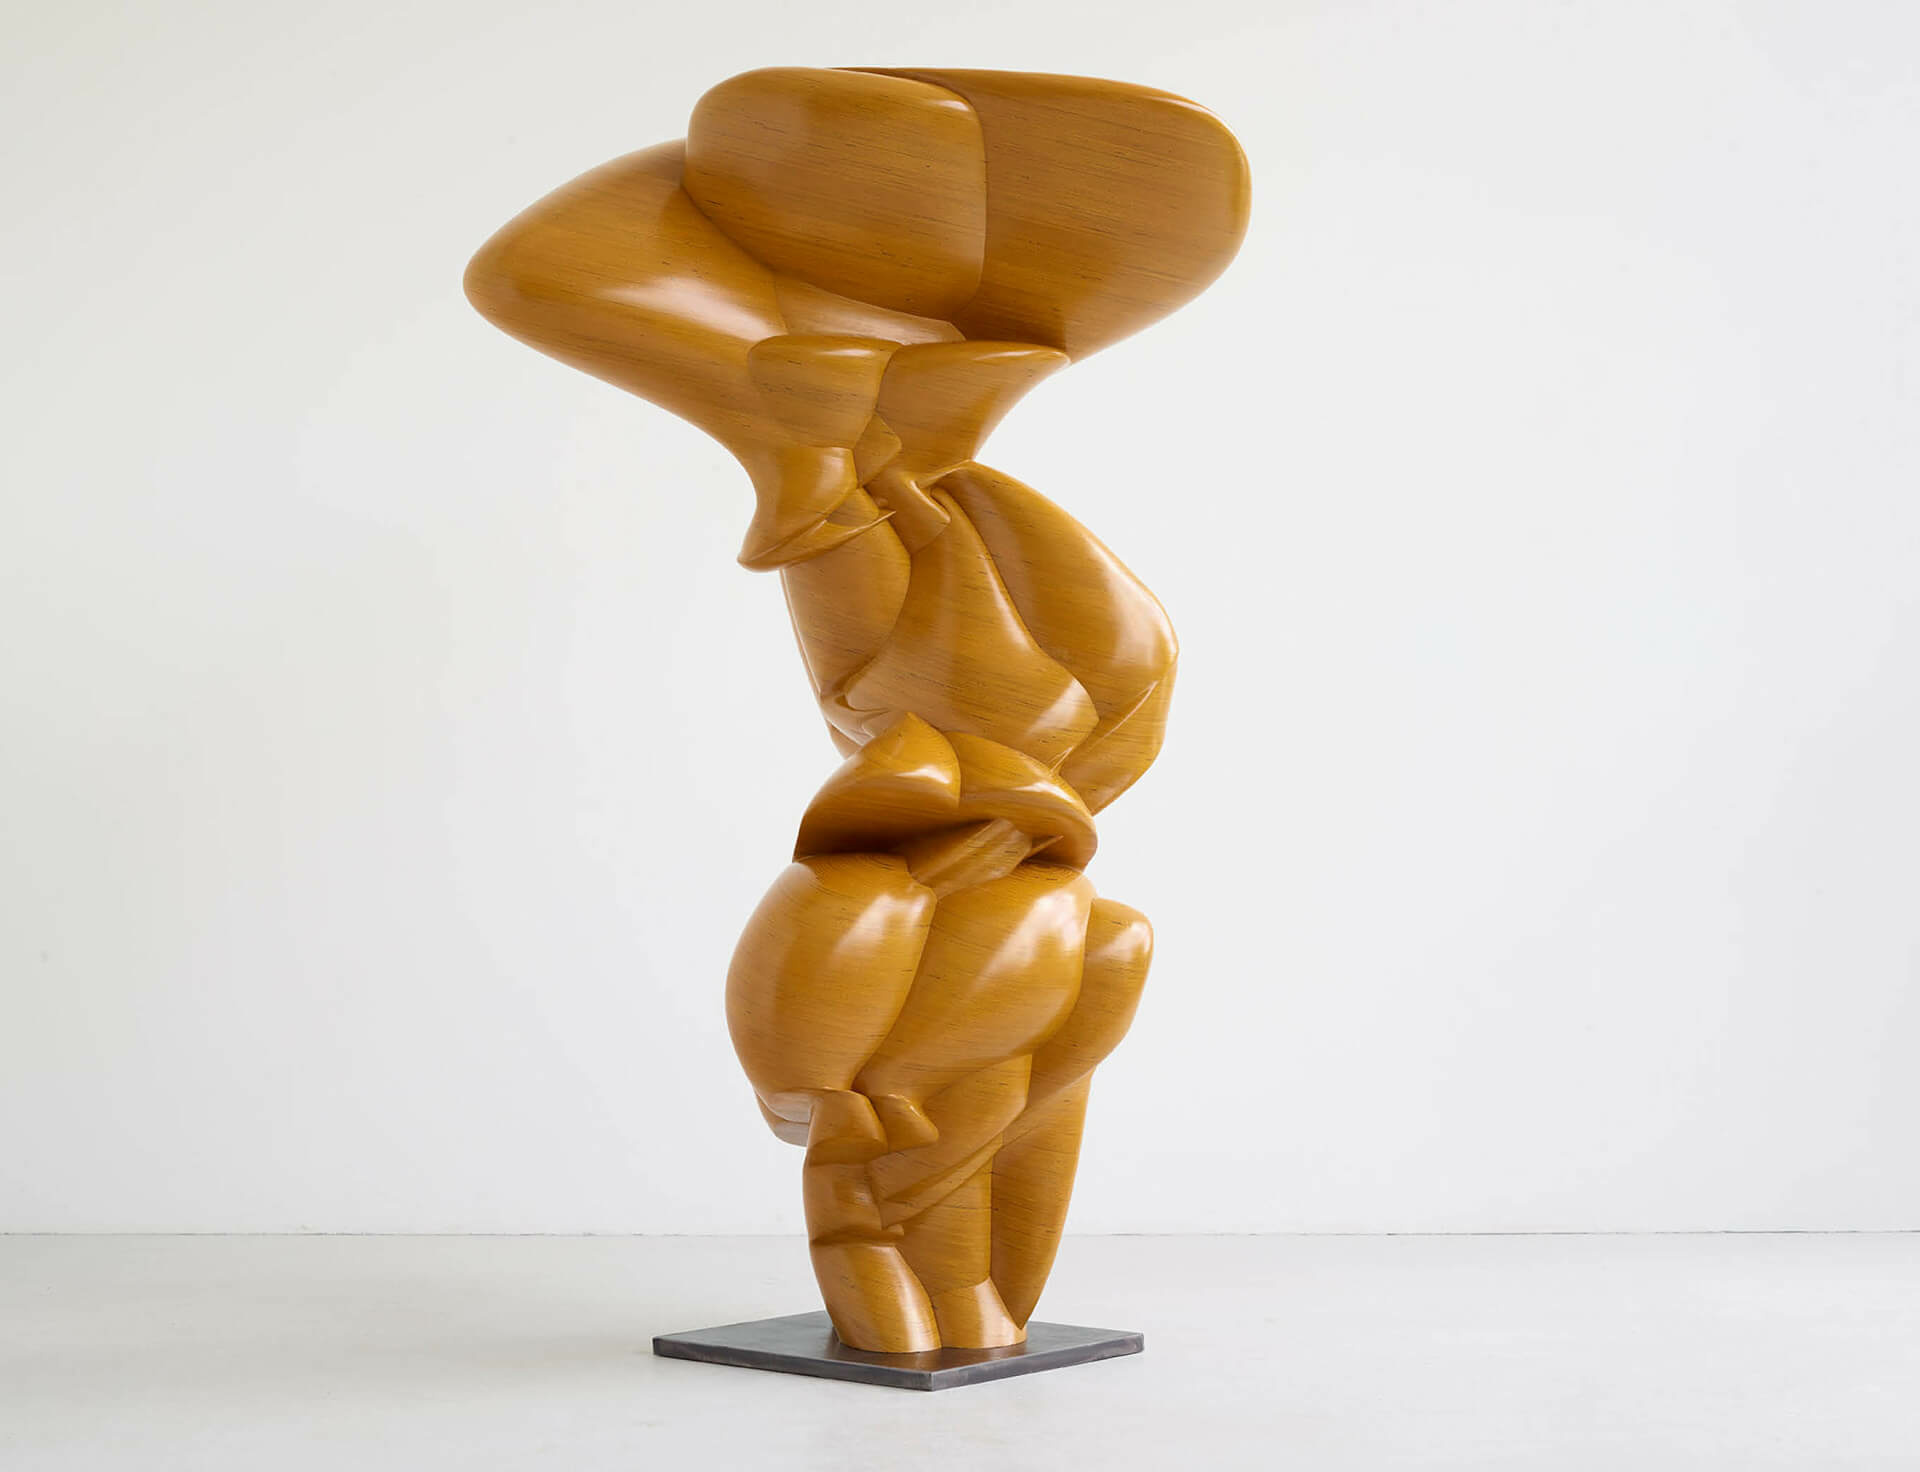 Tony Cragg: 'Parts of the World'